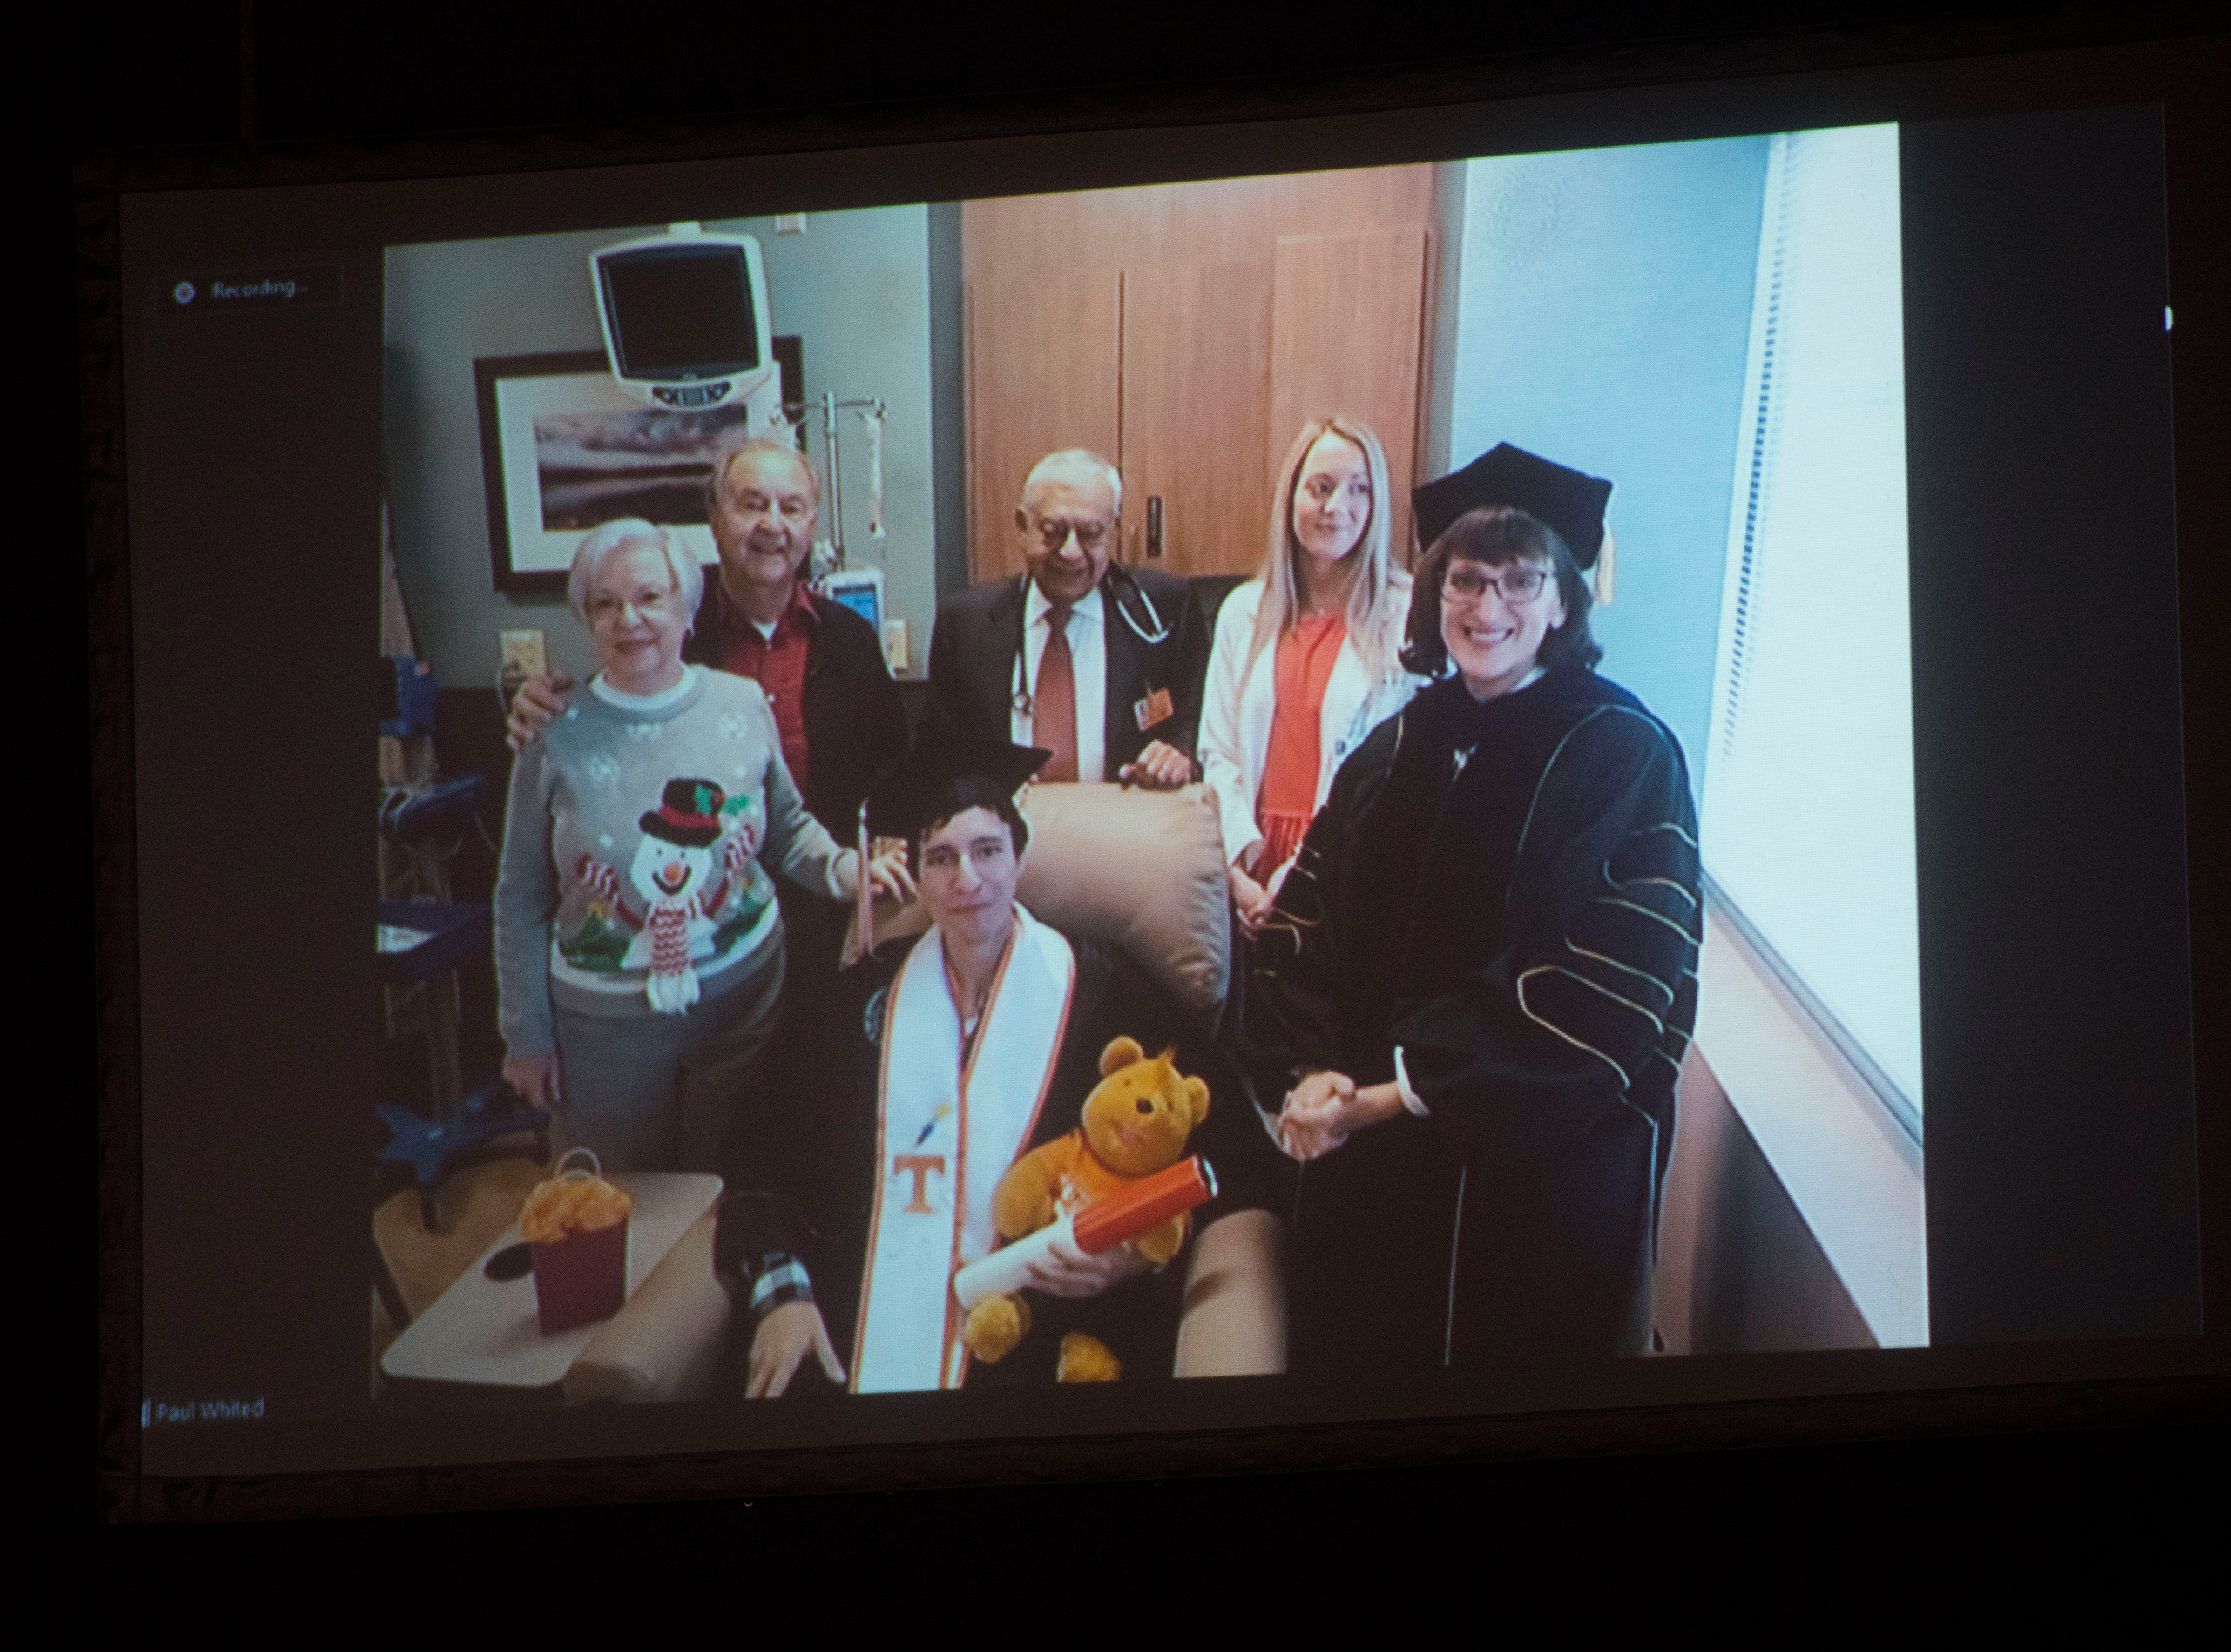 A video is shown of student Paul Whited (at center), surrounded by family during University of Tennessee's graduation Friday, Dec. 14, 2018. Whited is currently undergoing chemotherapy at University of Tennessee Medical Center.